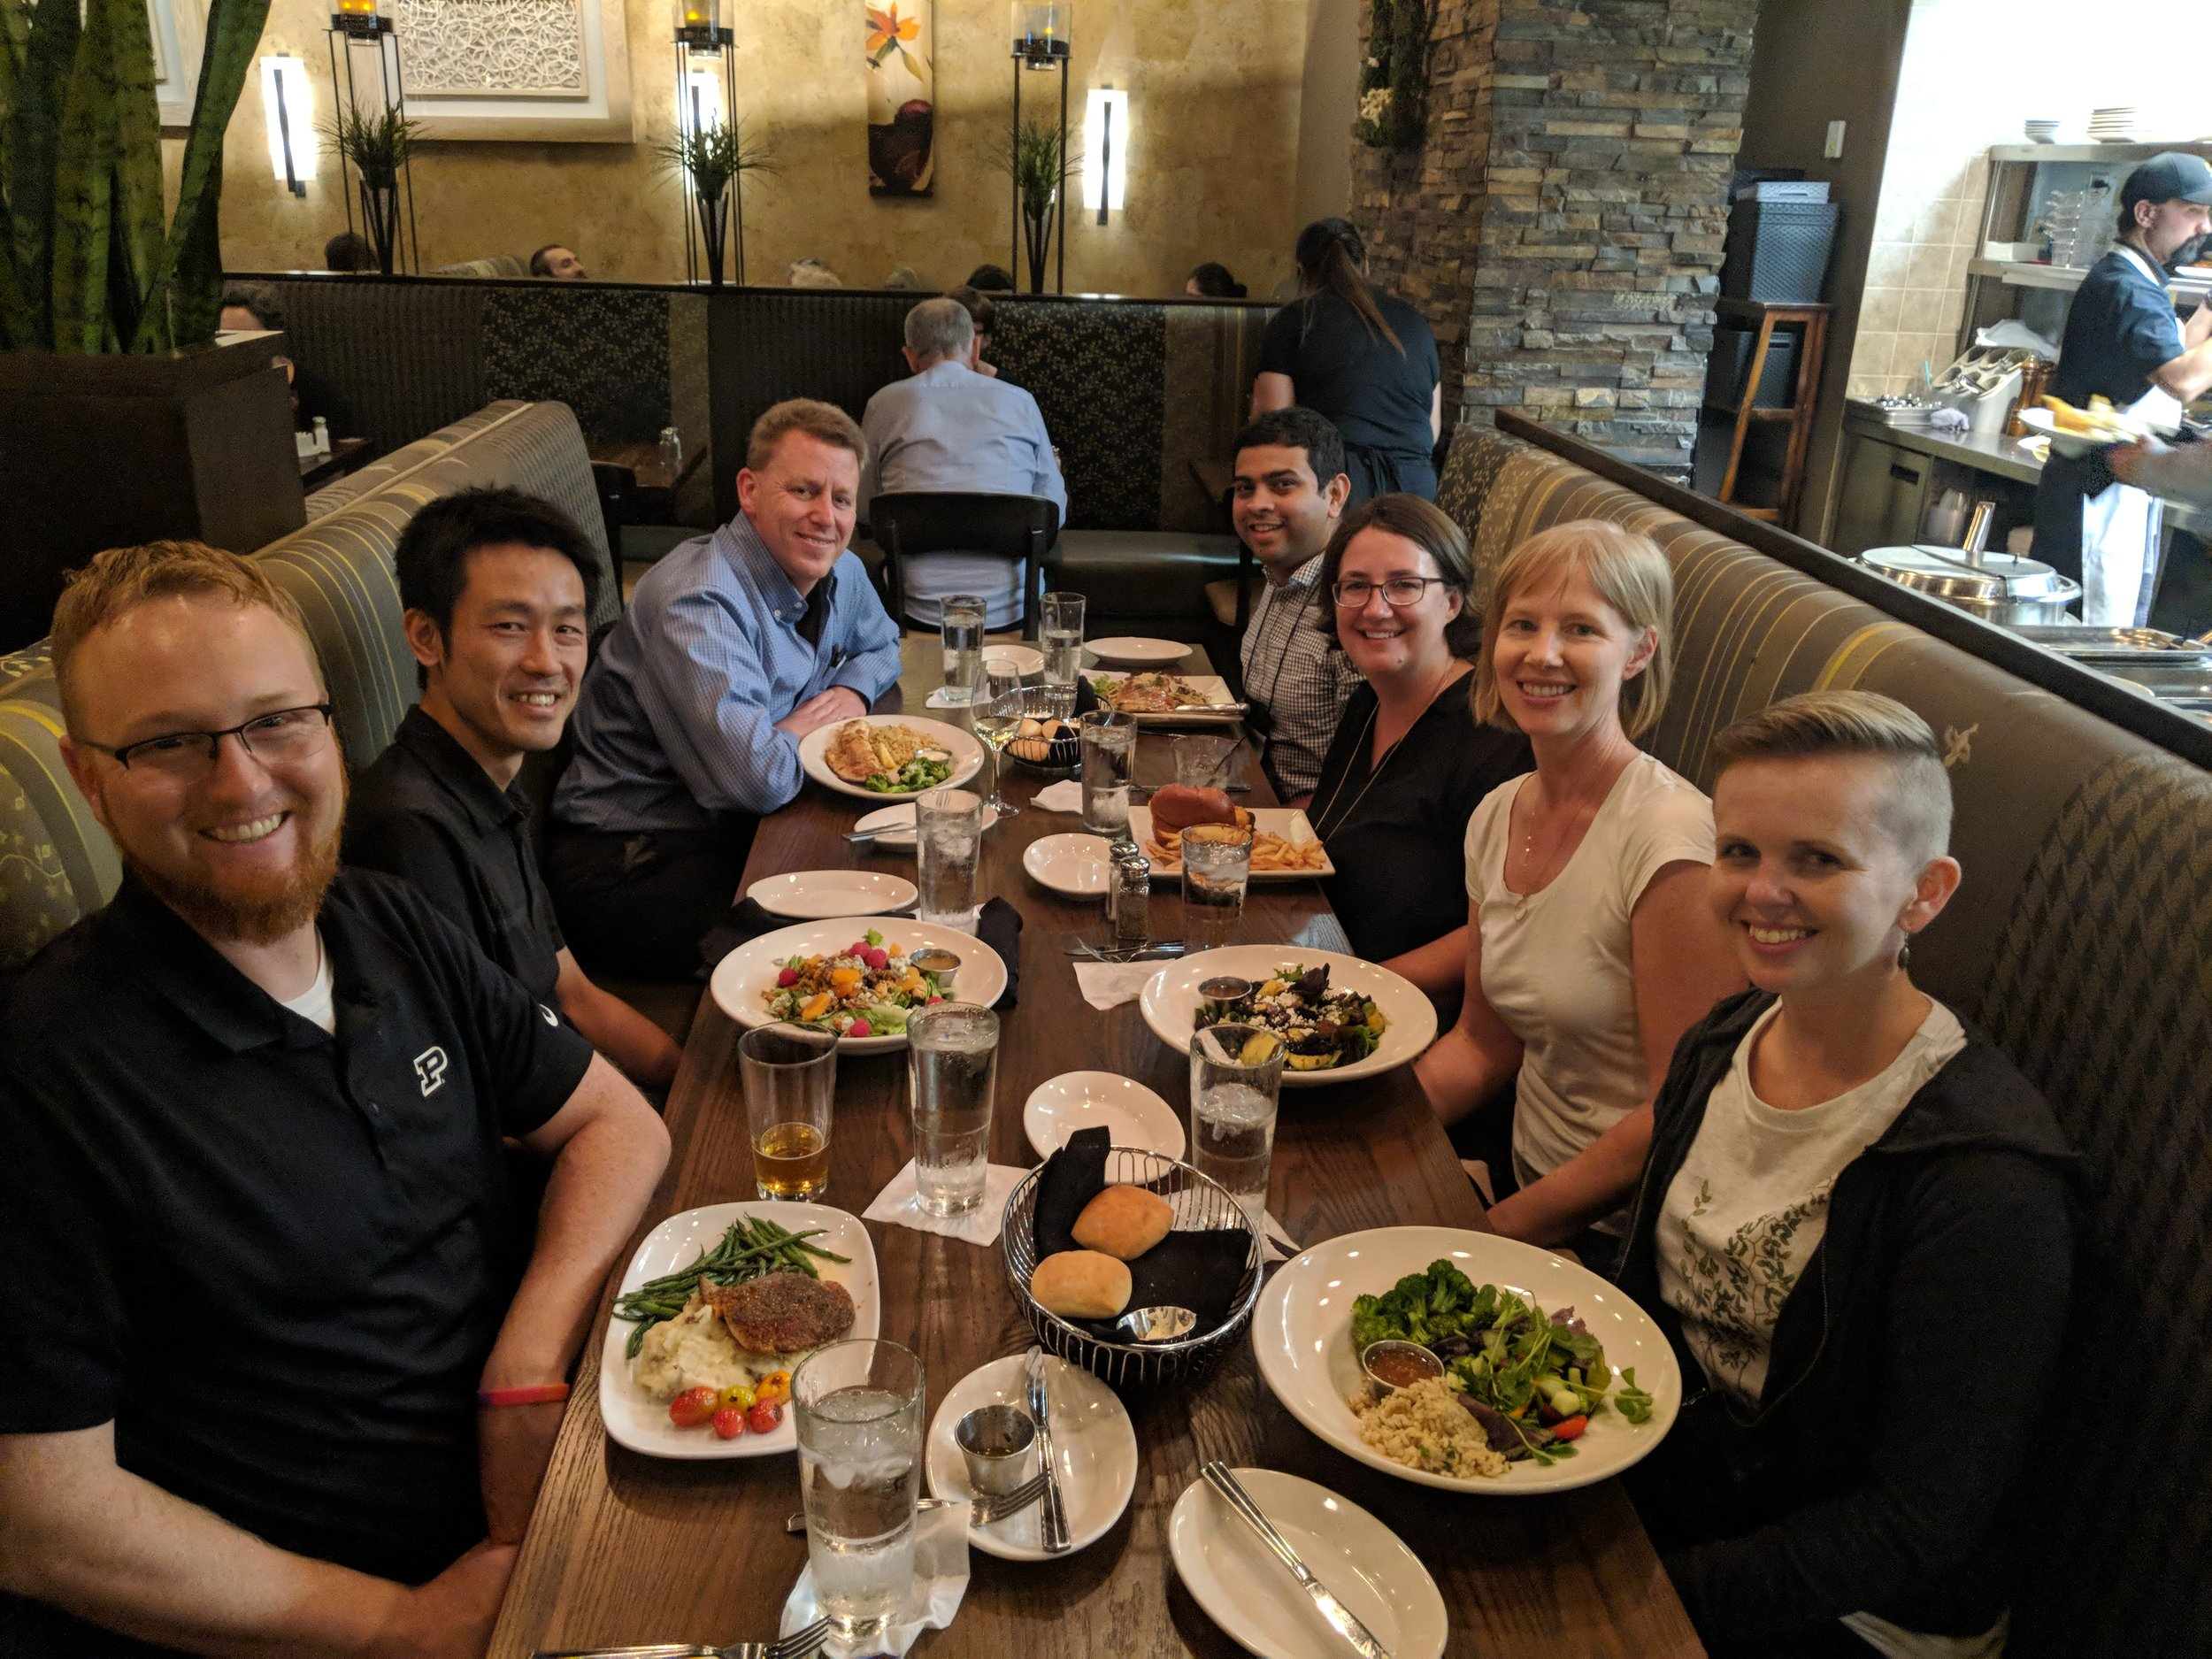 Good food and conversation with the symposium organizers (thanks Chris and Stacy!) and speakers.